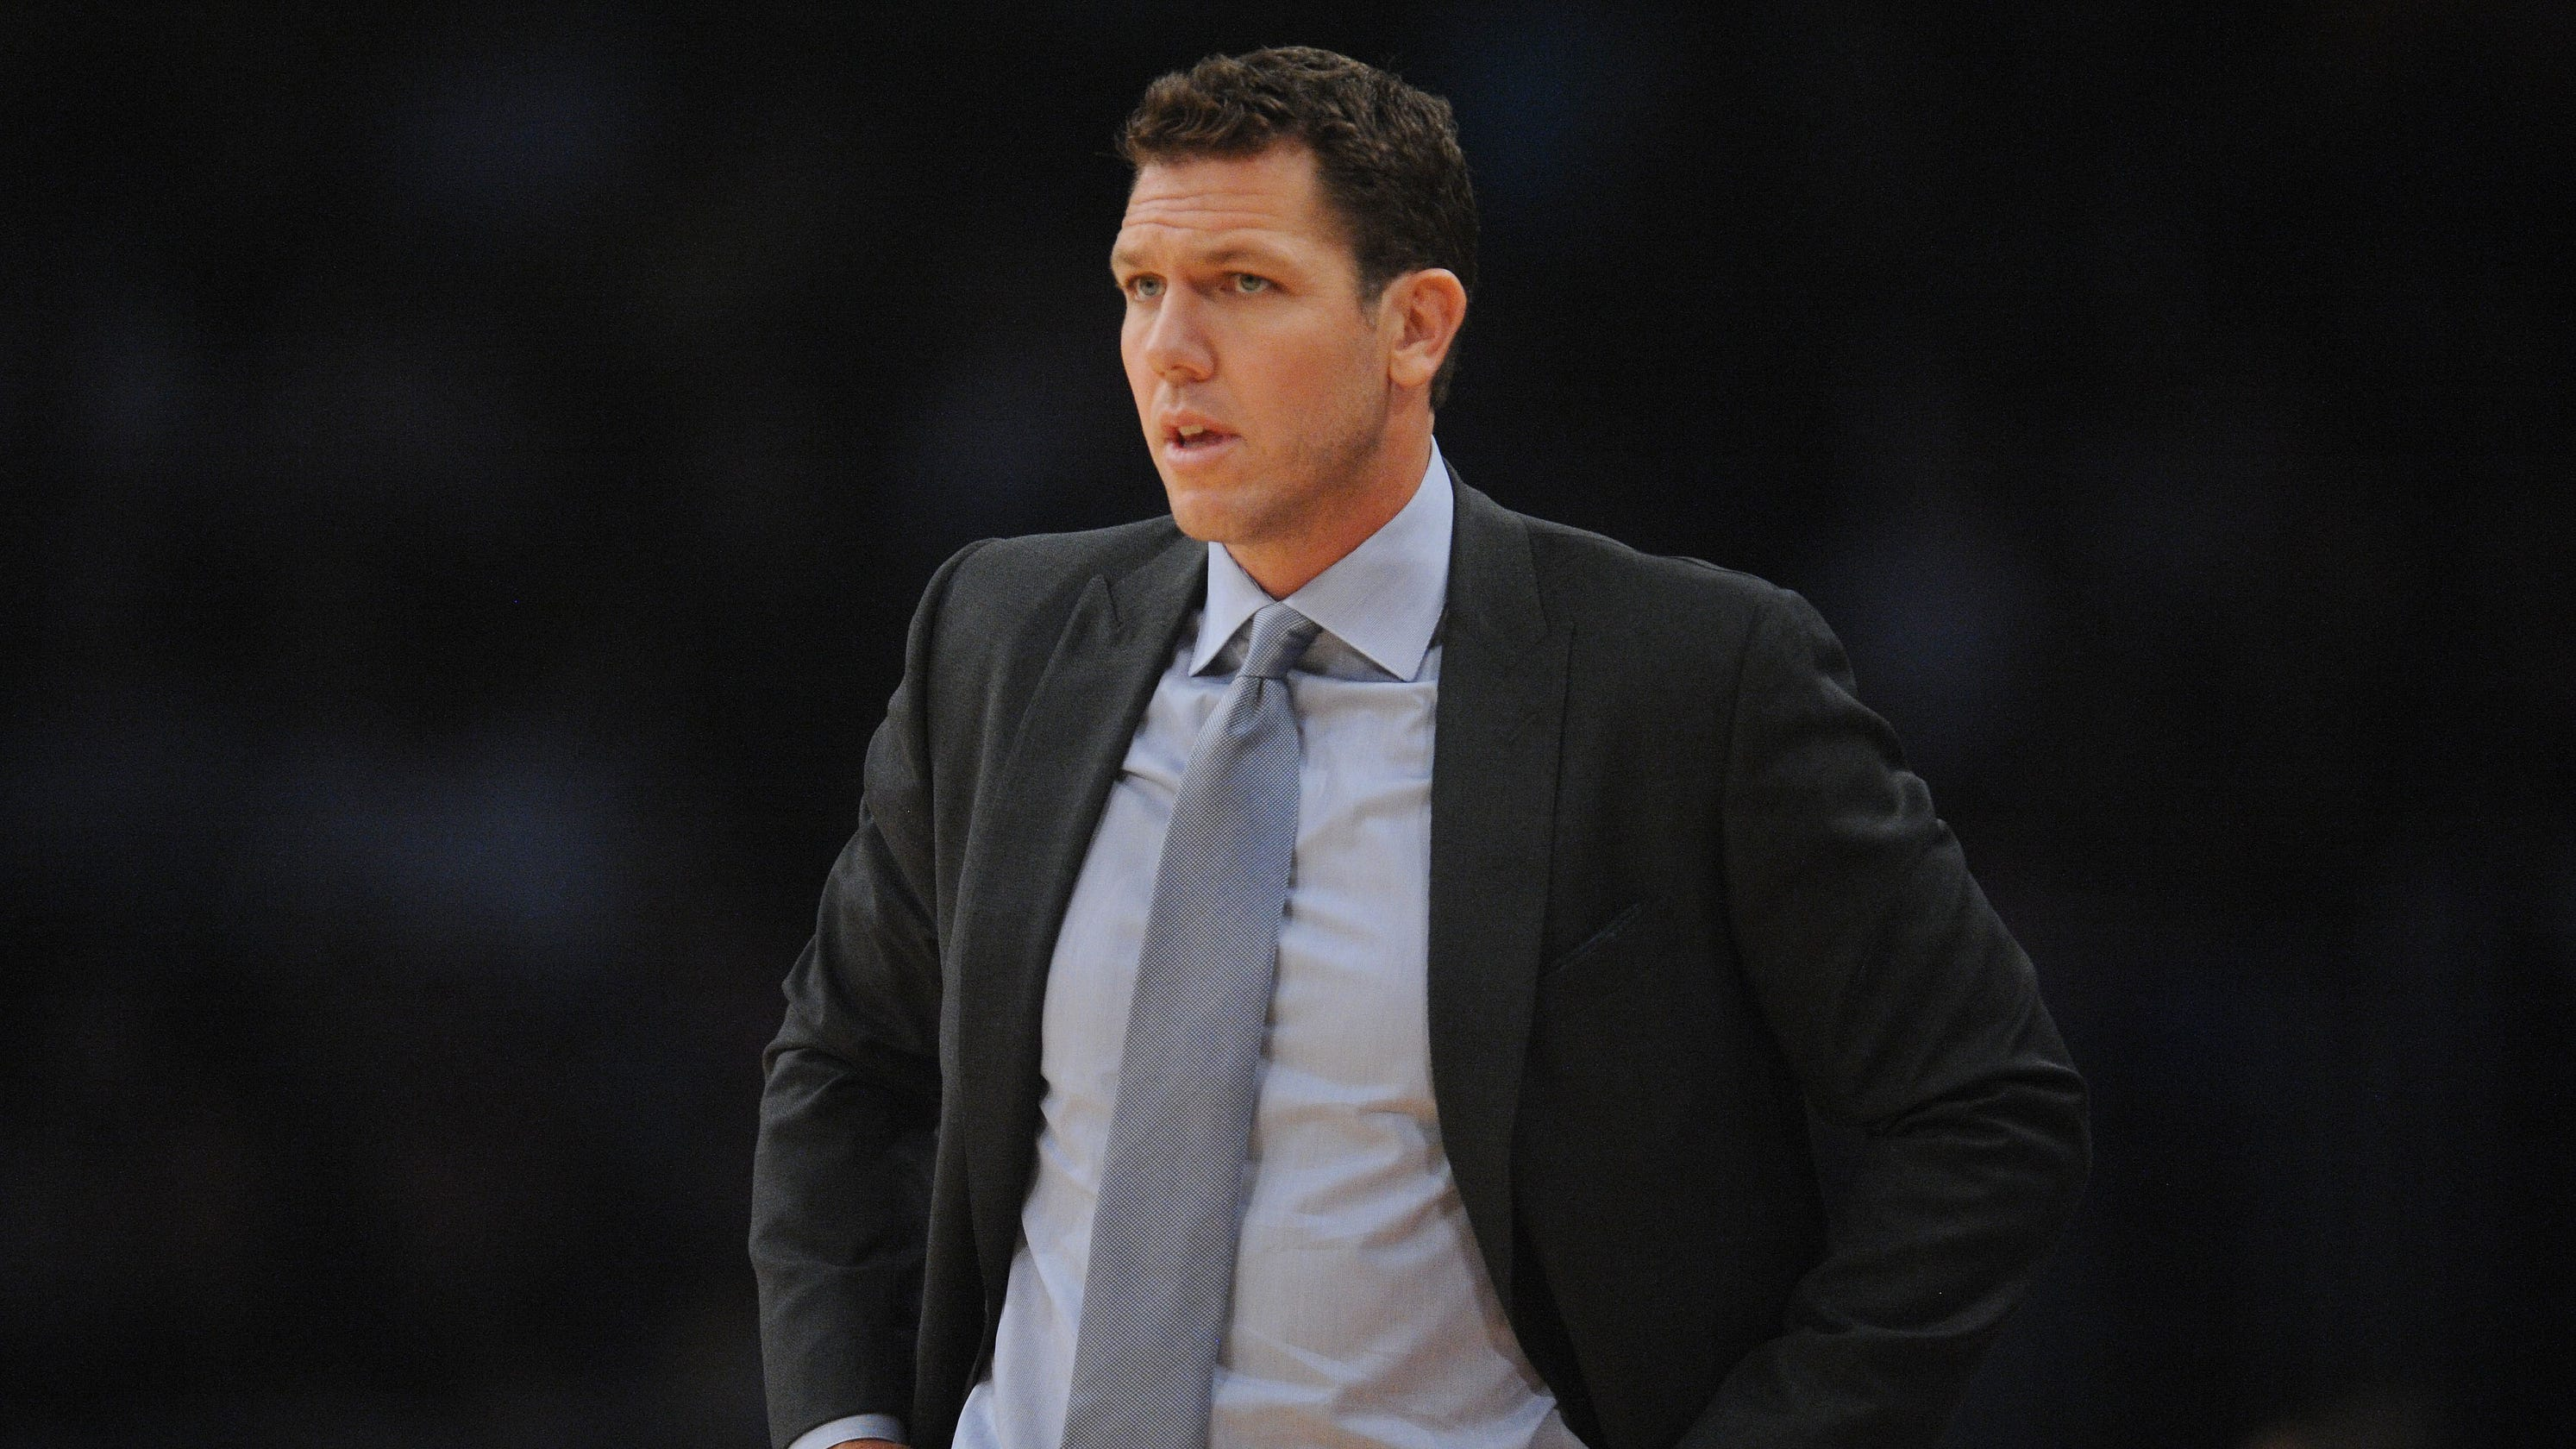 bedc119d7 Lakers  Coach Luke Walton sounds off on inconsistent officiating